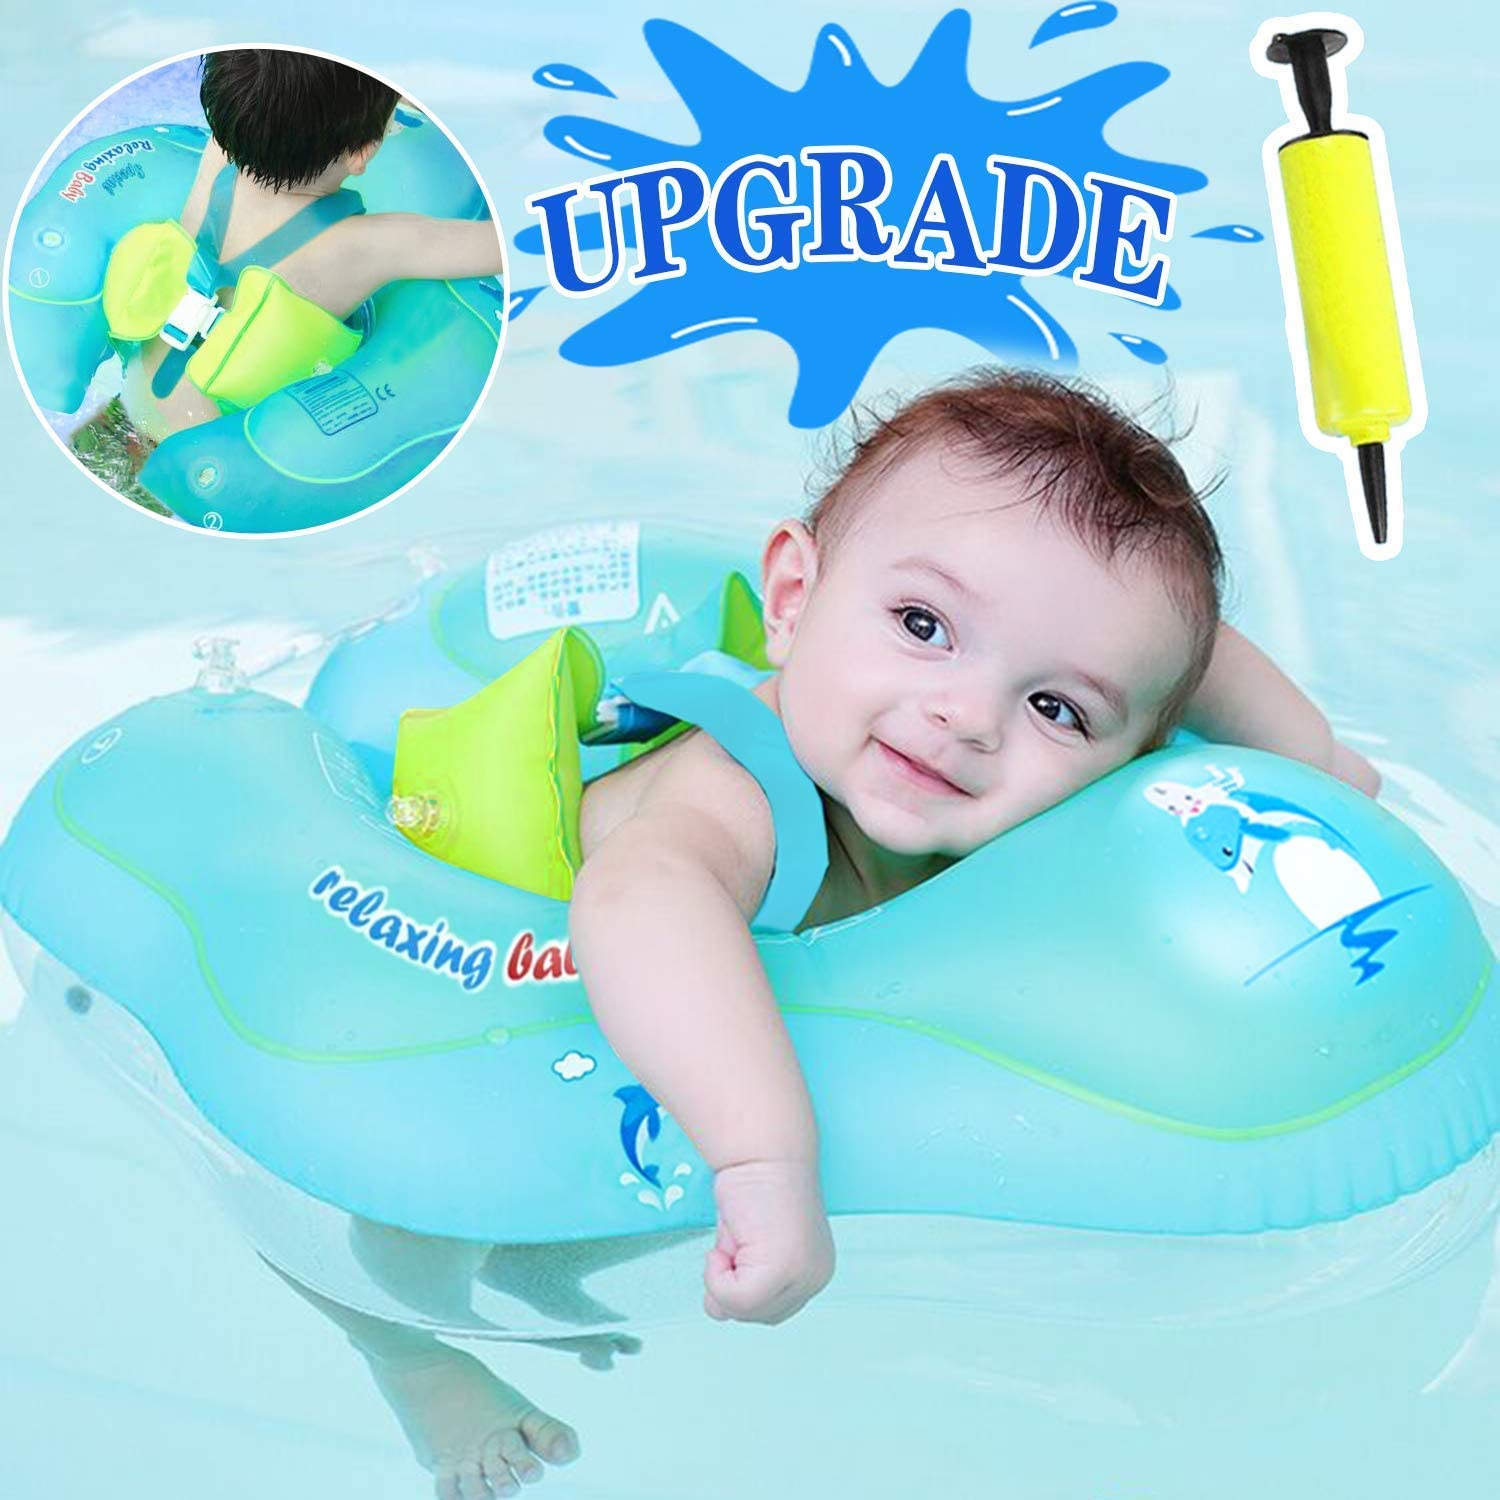 【Anti-Slip Crotch】Baby Swimming Float Ring-Baby Spring Floats Swim Trainer Newborn Baby Kid Toddler Age 6-30 Month 17.5-33 Lbs Summer Outdoor Beach Water Bath Toy Swimming Pool Accessories 712I2ulEKnL